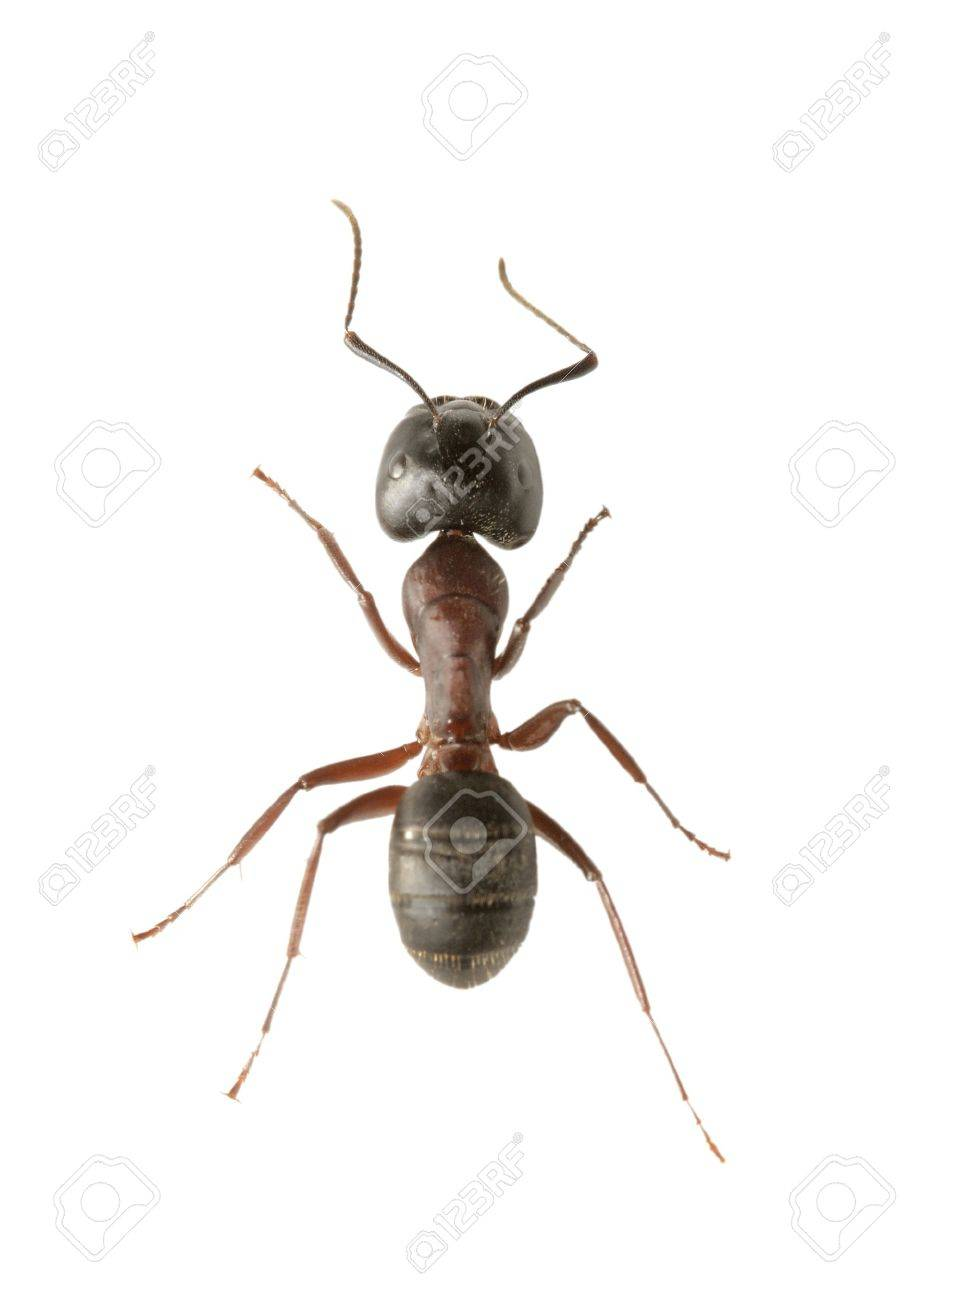 A Small ant isolated on white. Very short depth of field. Stock Photo - 4766793